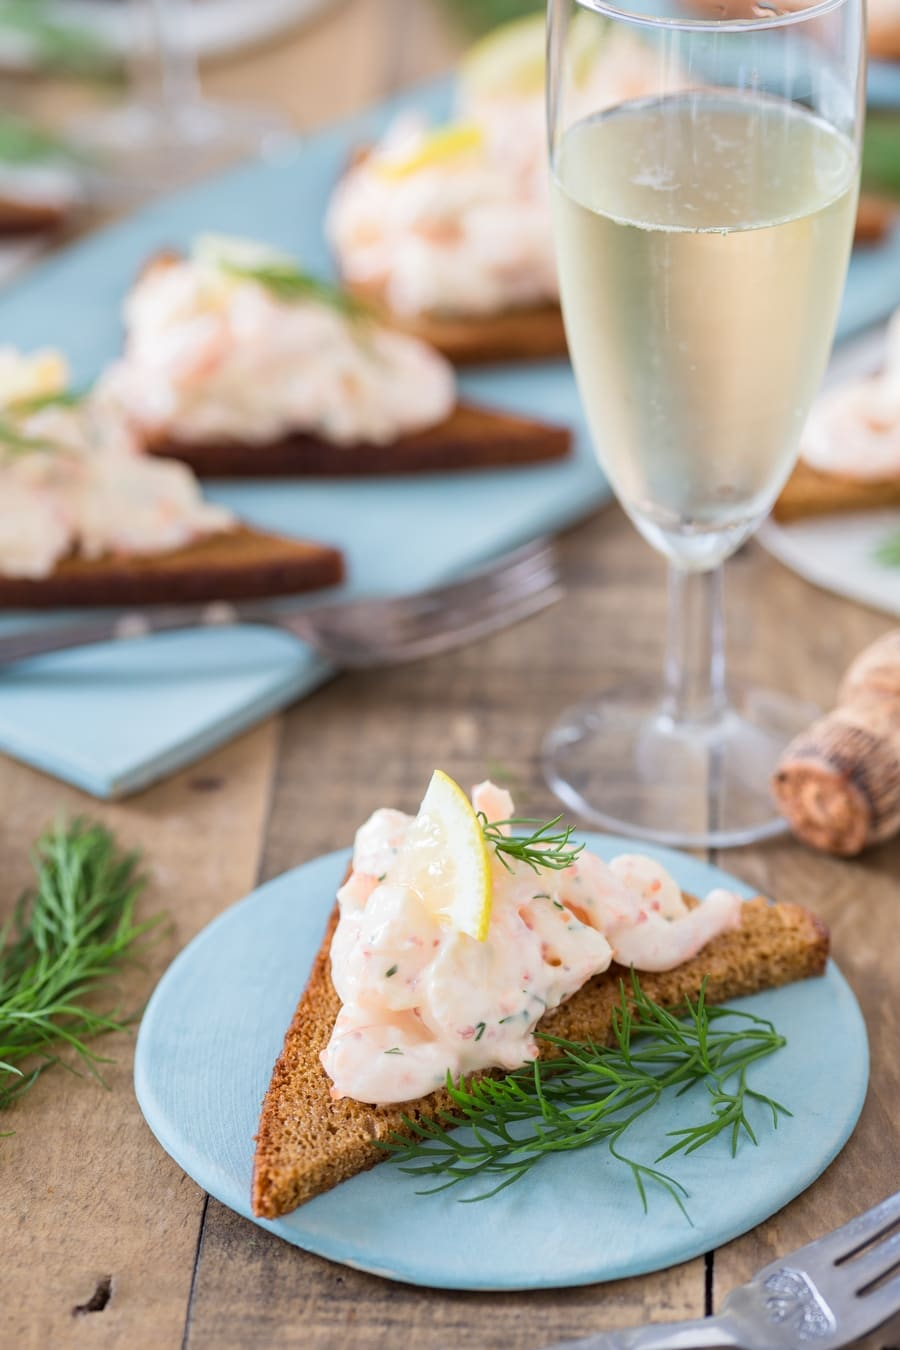 Single rye toast topped with skagenröra shrimp salad.